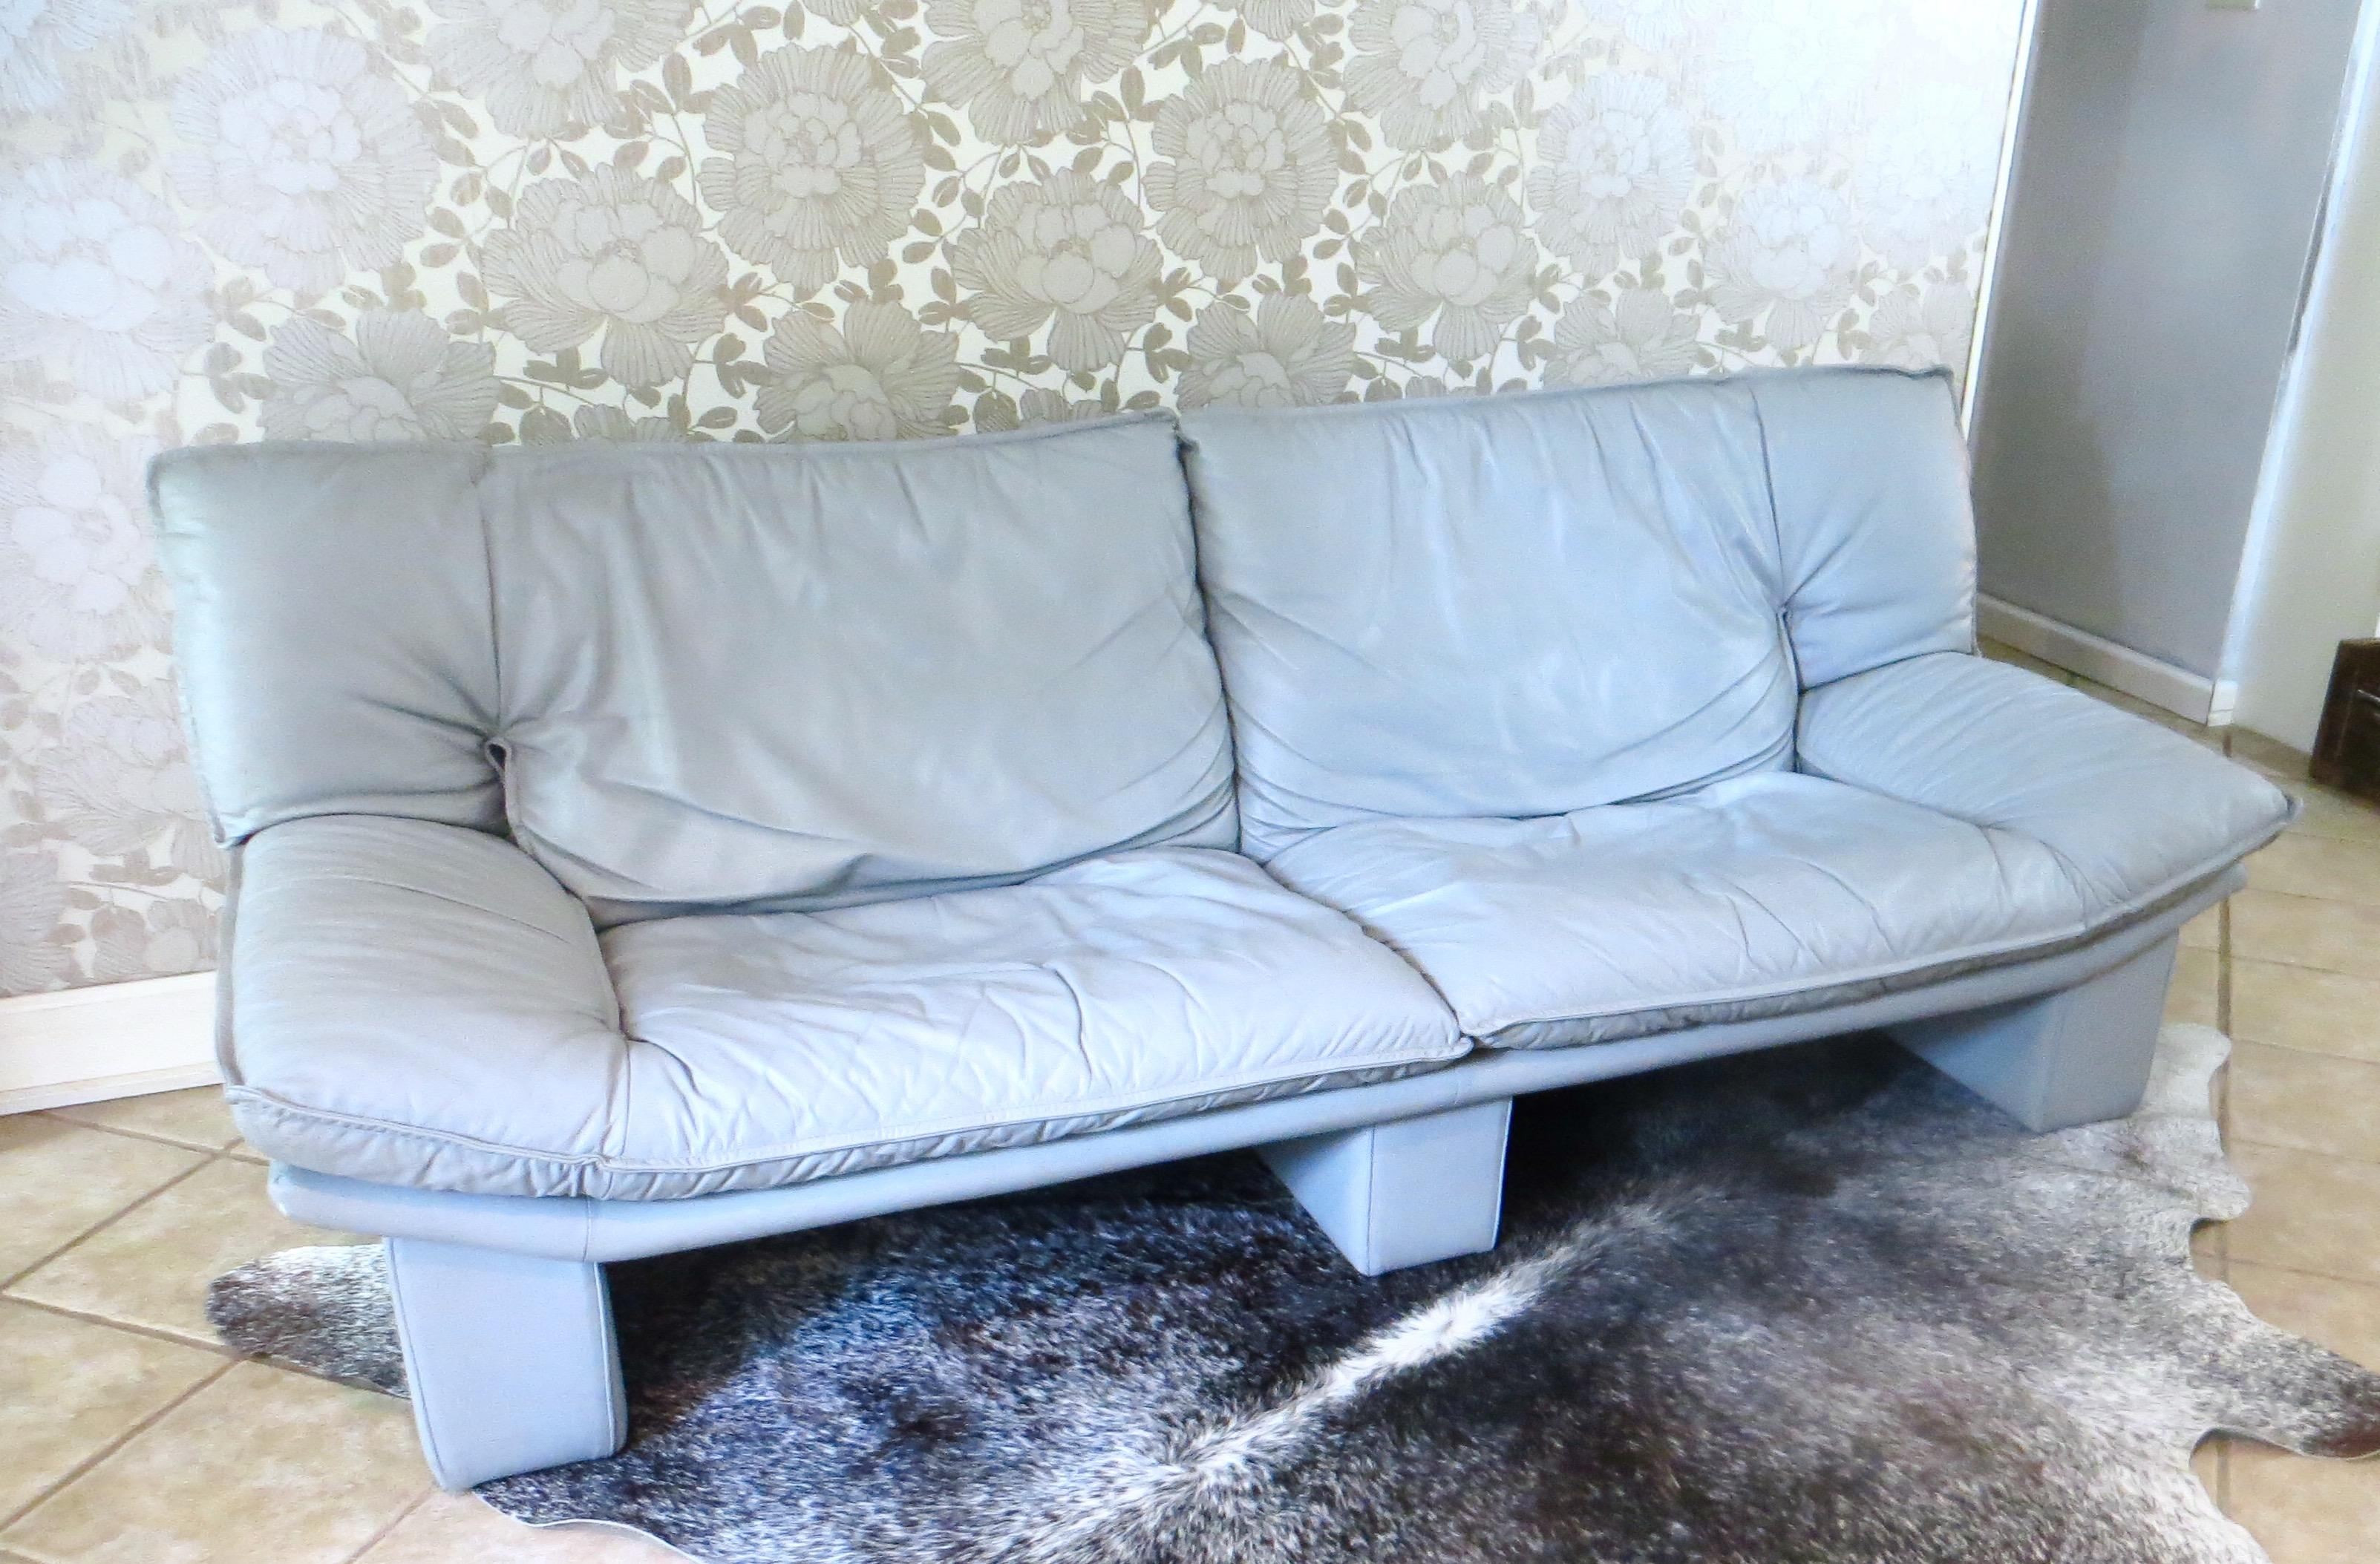 Vintage Italian Leather Sofa By Nicoletti Salotti   Image 3 Of 10